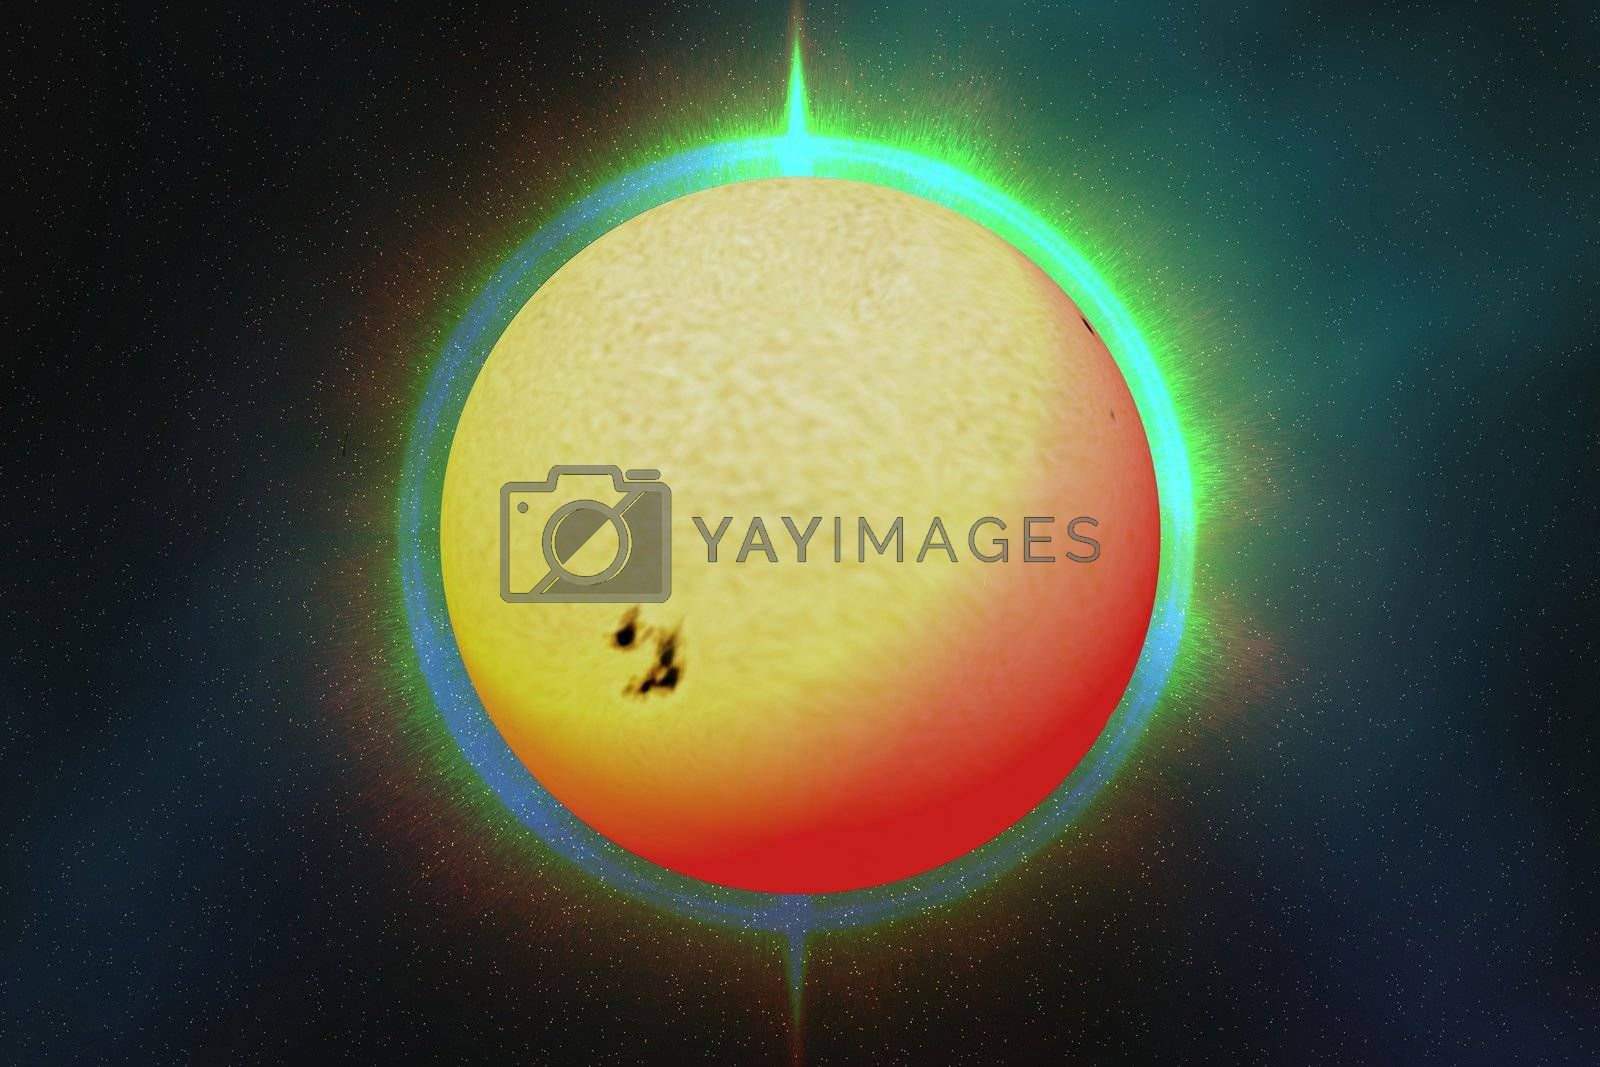 The sun with a colorful aura surrounding it.